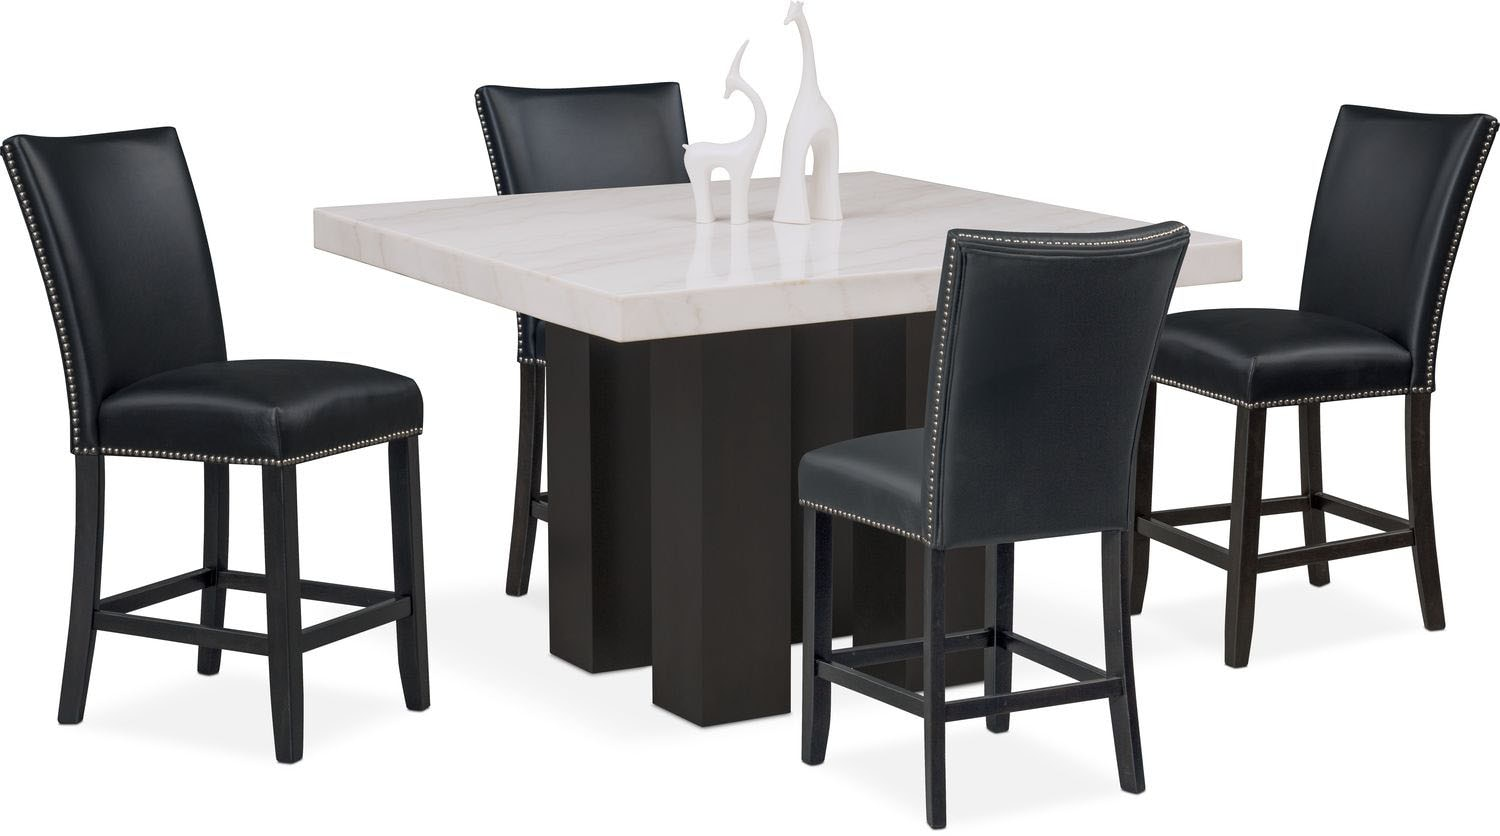 Artemis Counter Height Dining Table And 4 Upholstered Stools   Black